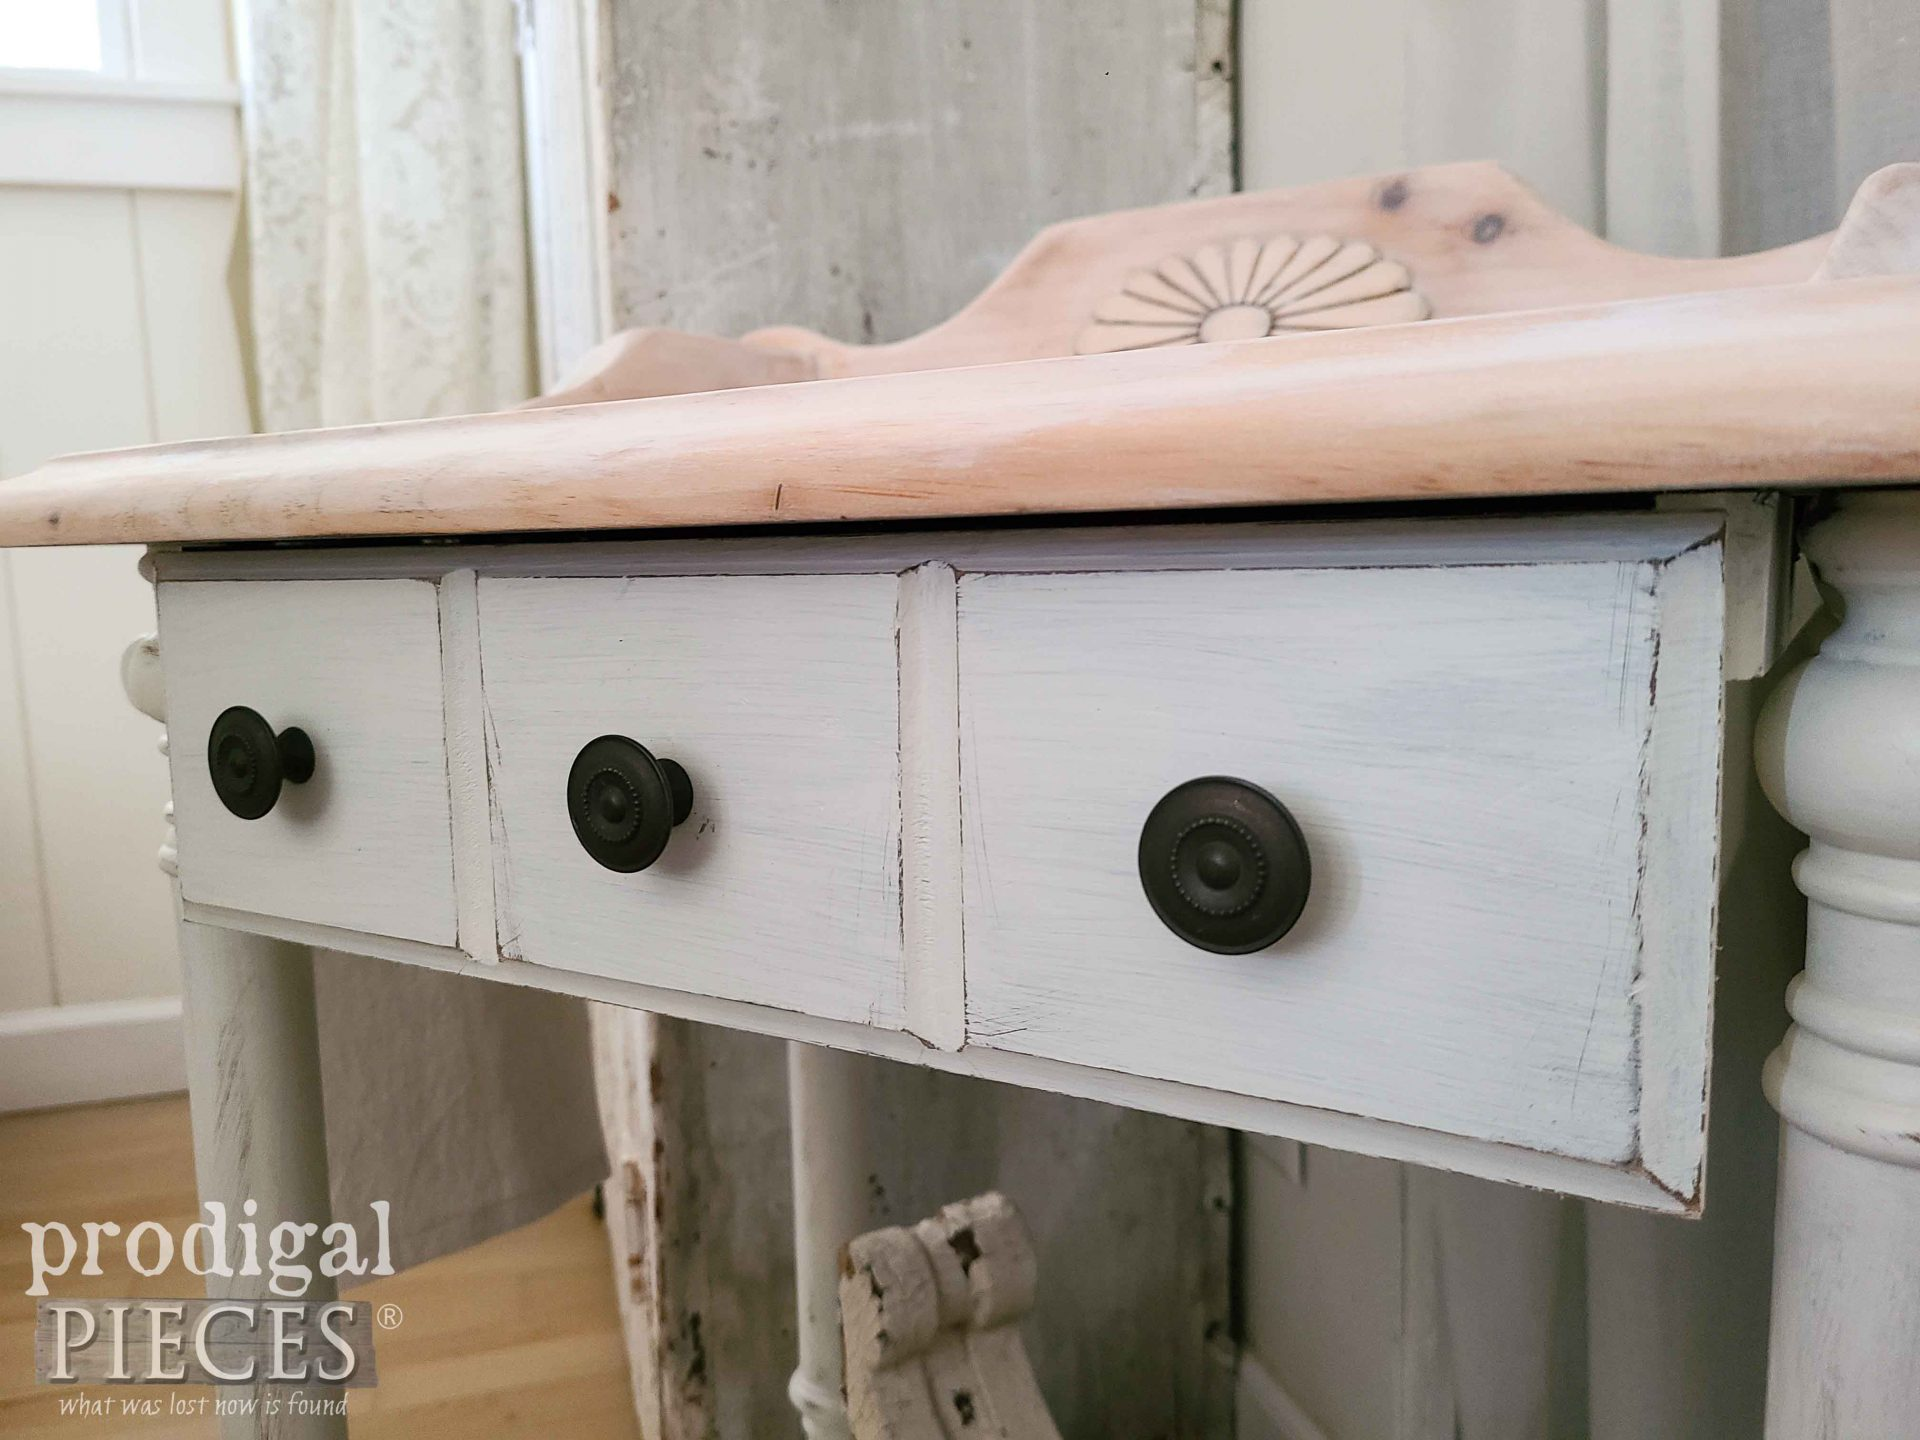 Antique Drawer Knobs on Wash Stand by Larissa of Prodigal Pieces | prodigalpieces.com #prodigalpieces #farmhouse #home #antique